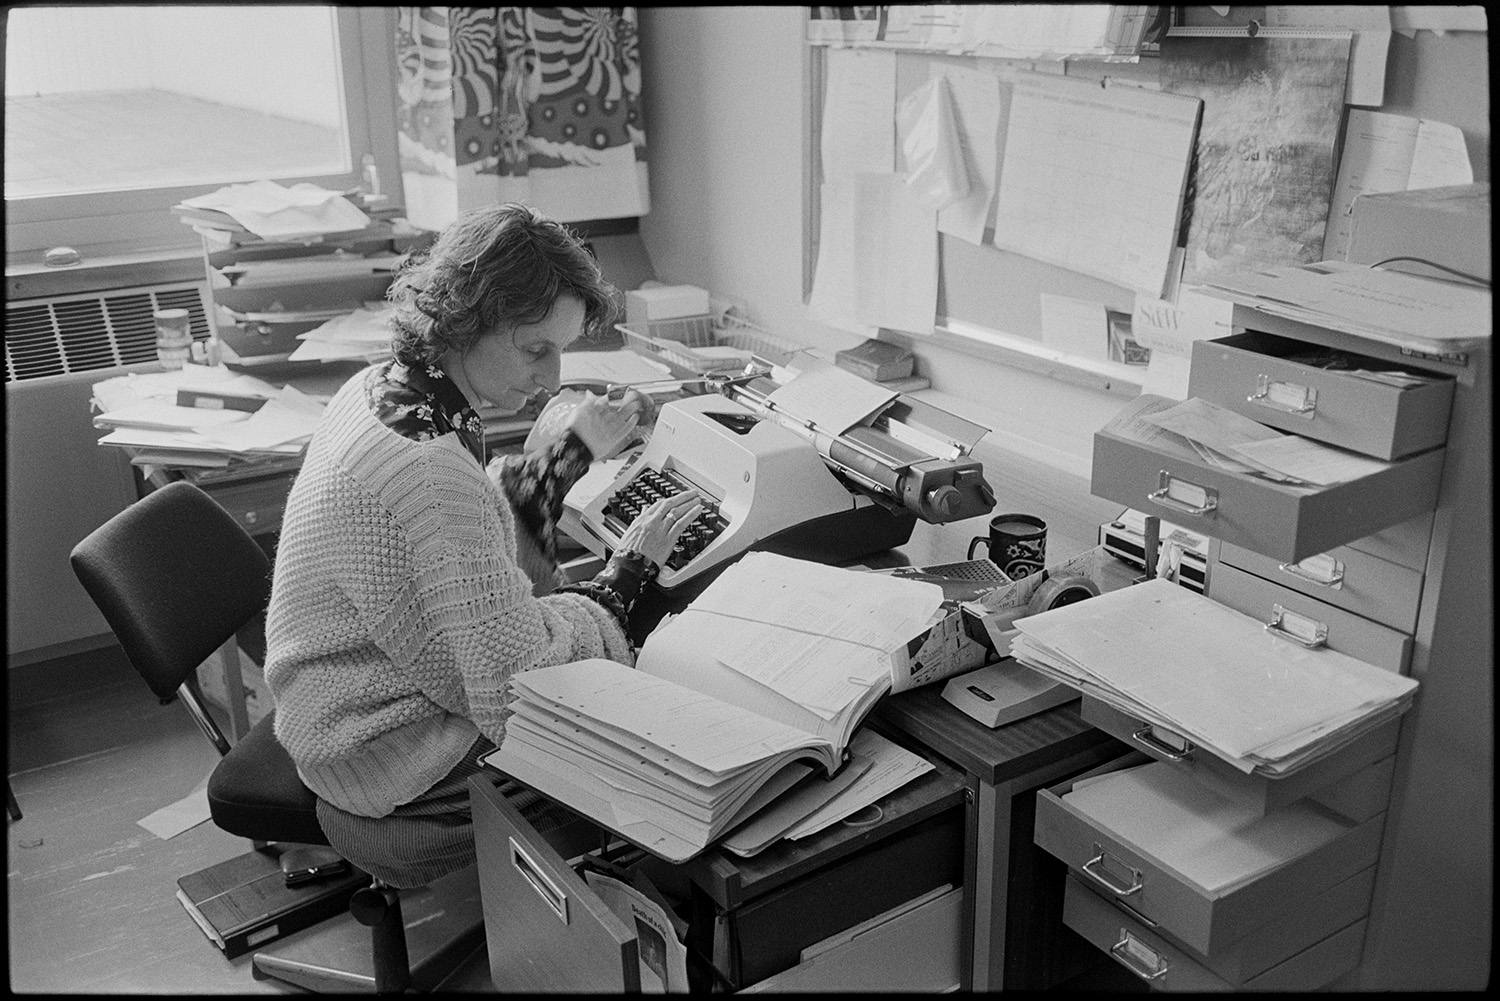 Hospital Doctor's Secretary at her desk tying, Barnstaple General Hospital, March 1984. Documentary photograph by James Ravilious for the Beaford Archive